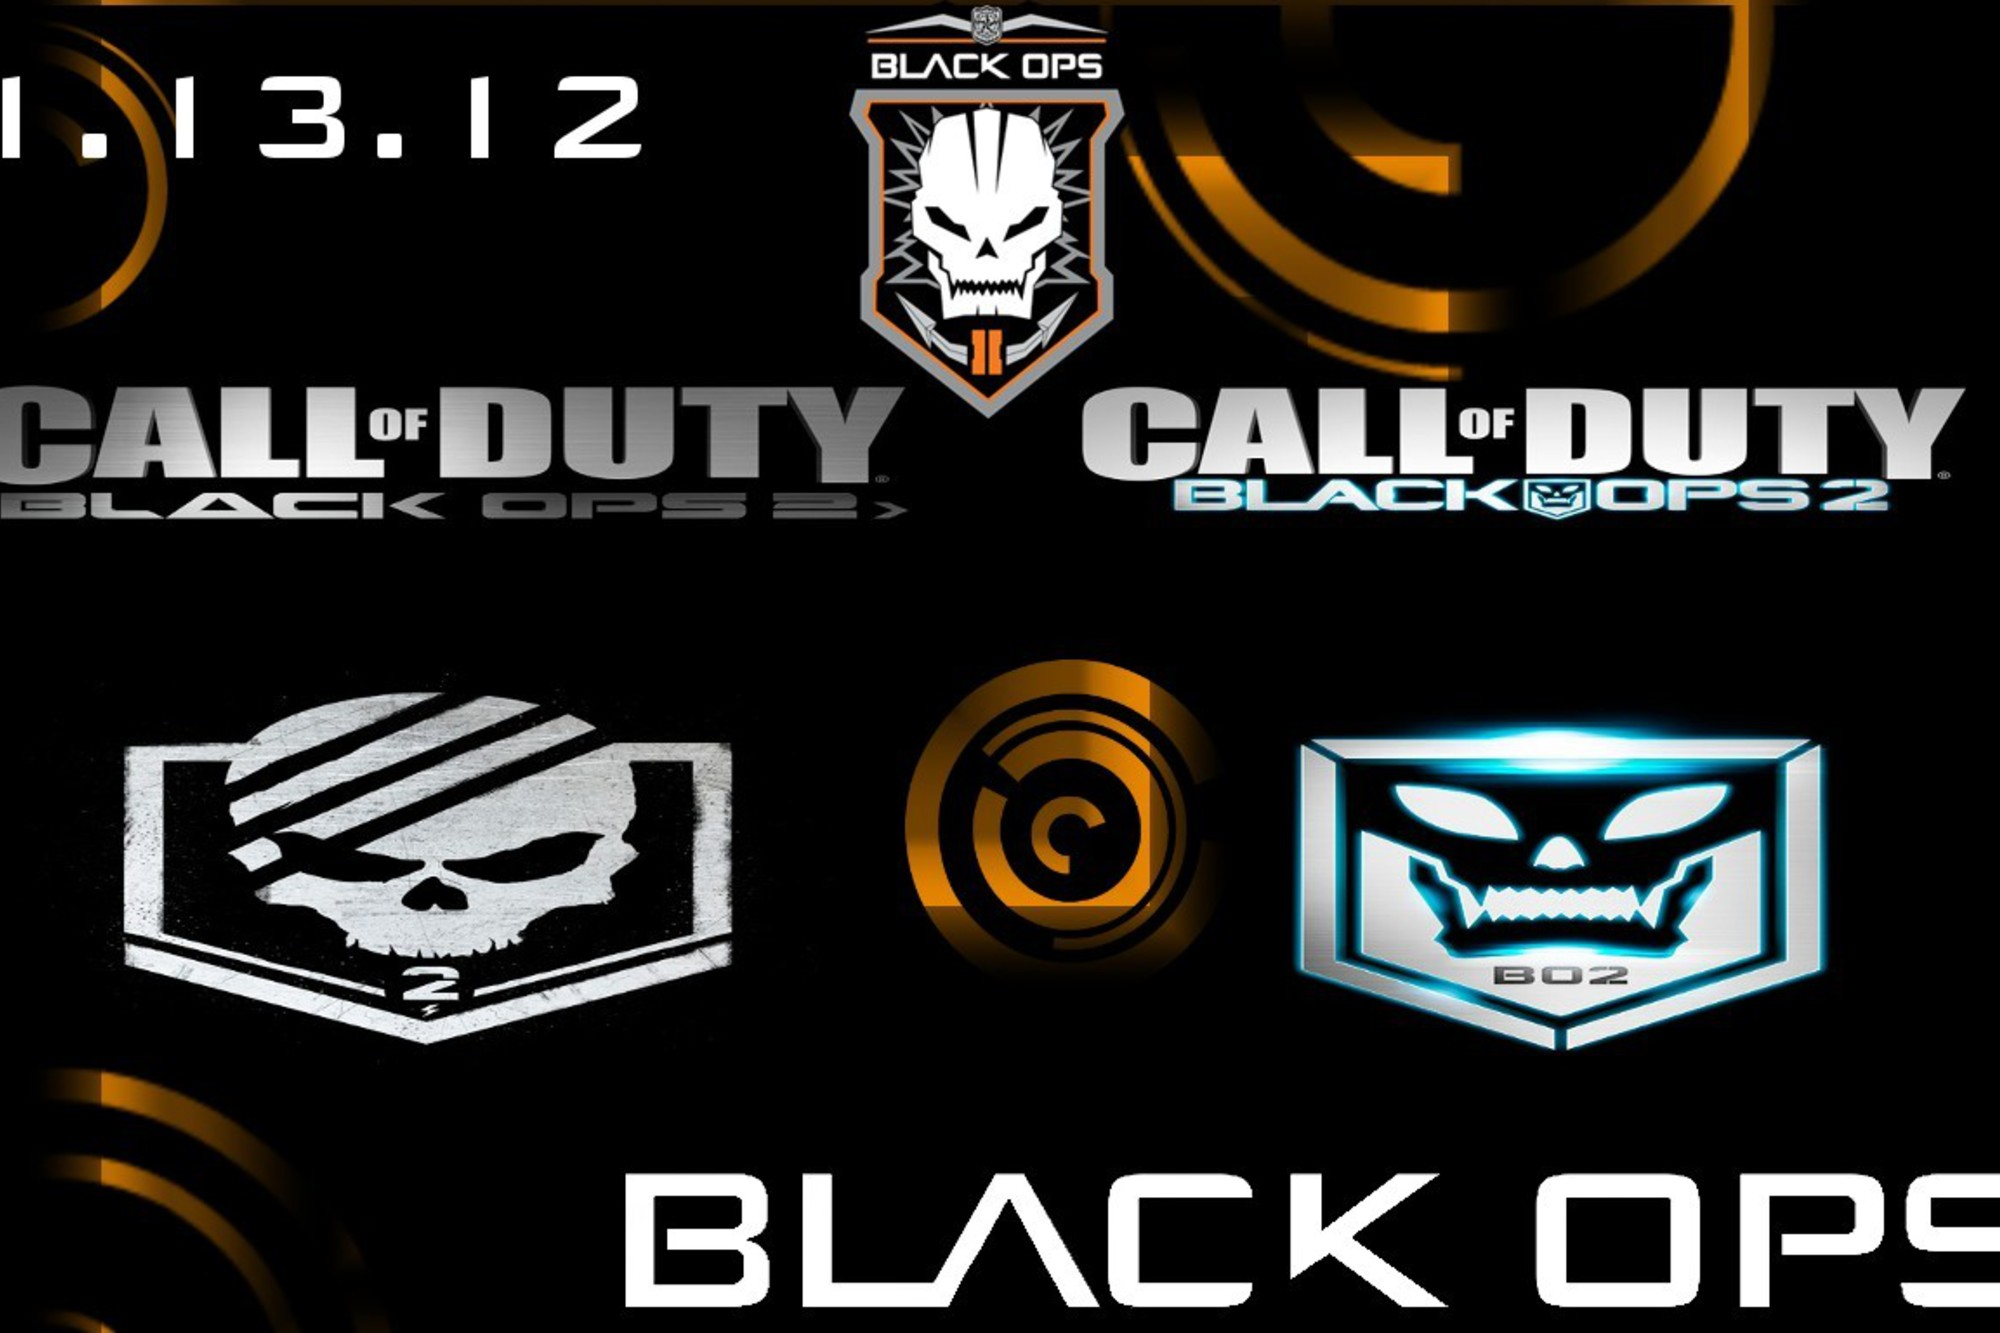 Call of duty treyarch black ops 2 wallpaper allwallpaper wallpaper resolutions biocorpaavc